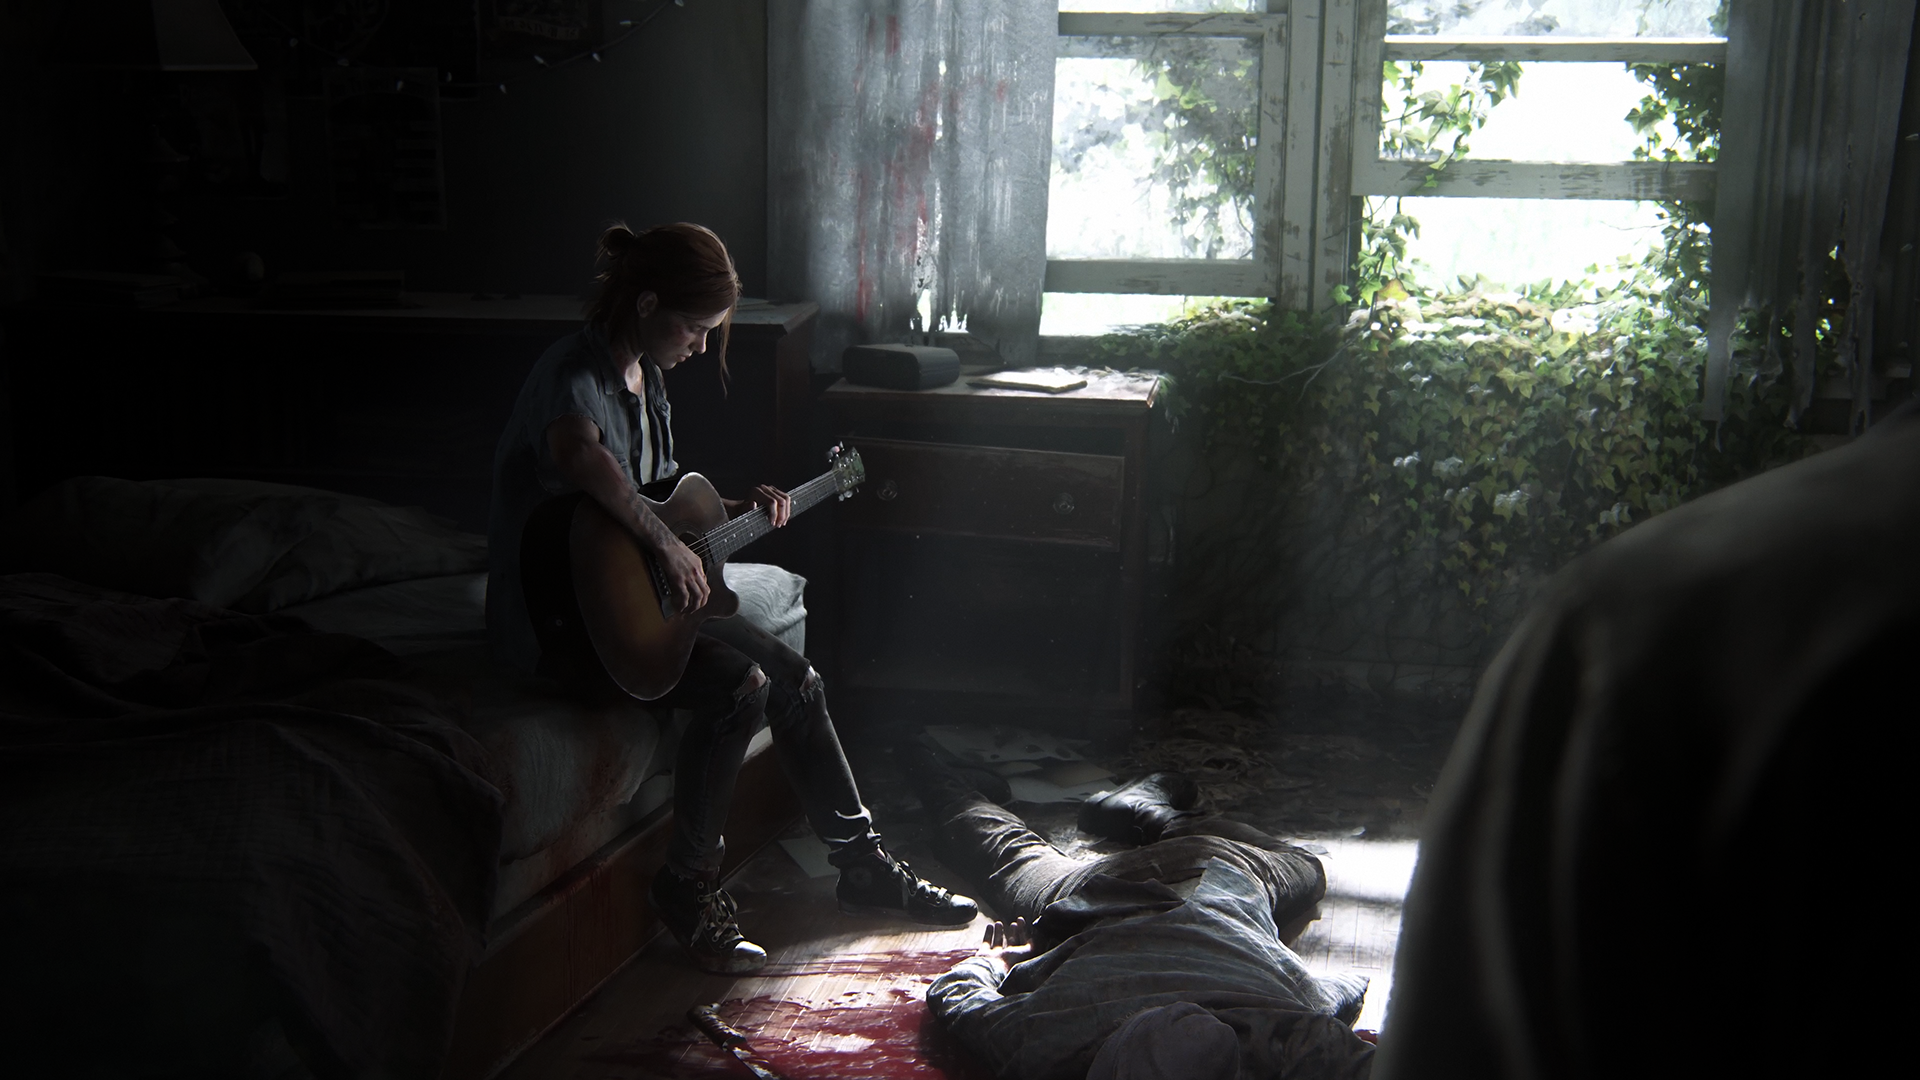 The Last Of Us Wallpaper 4k: The Last Of Us Part 2 Wallpapers Images Photos Pictures